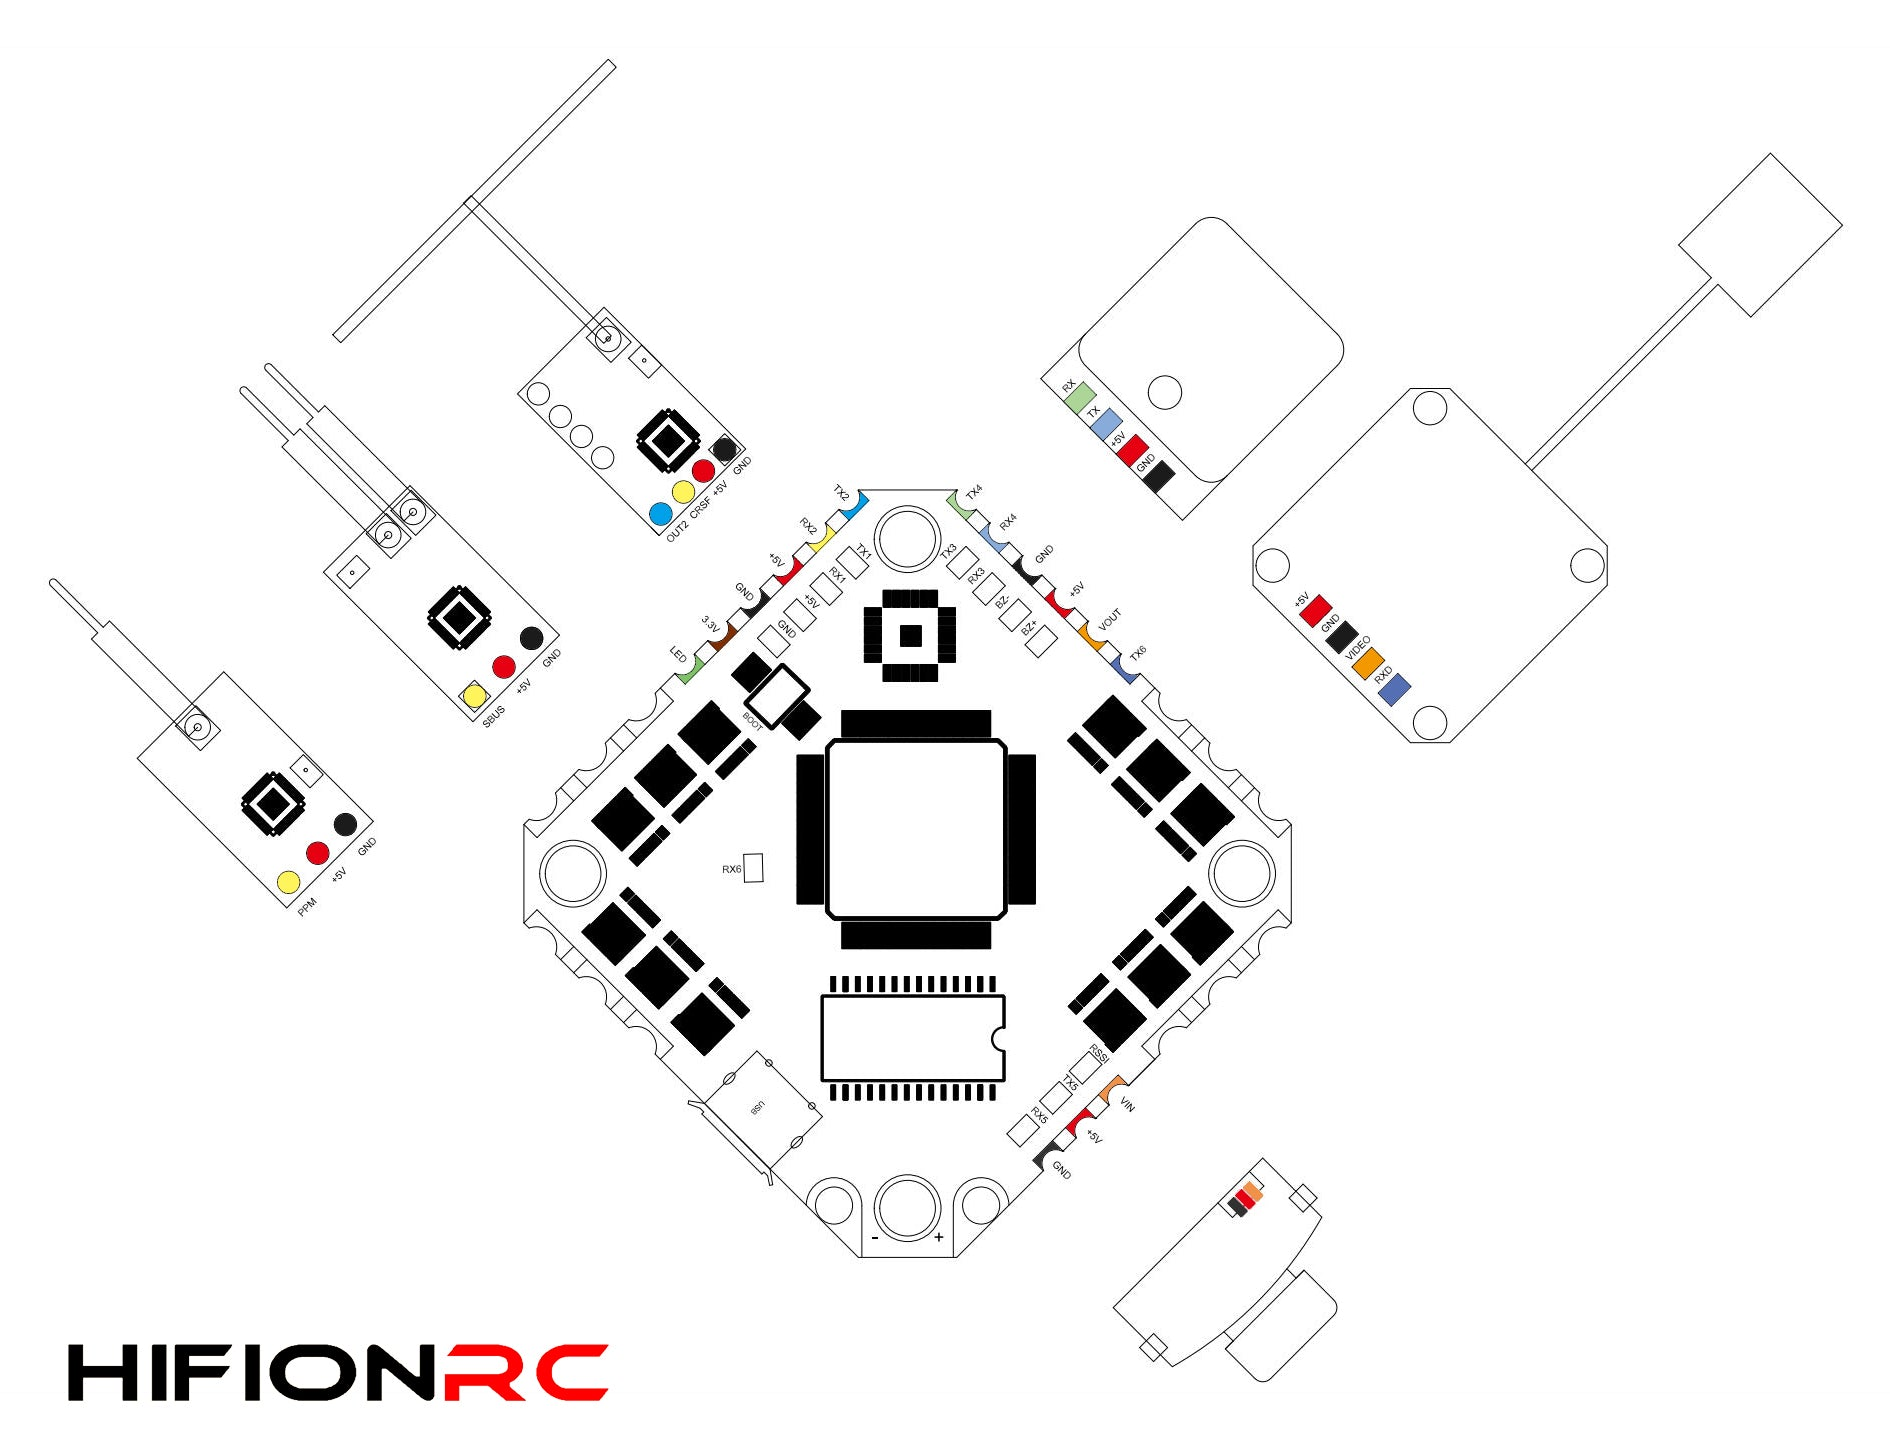 HIFIONRC F7 2-6S AIO Whoop Flight Controller for Sale